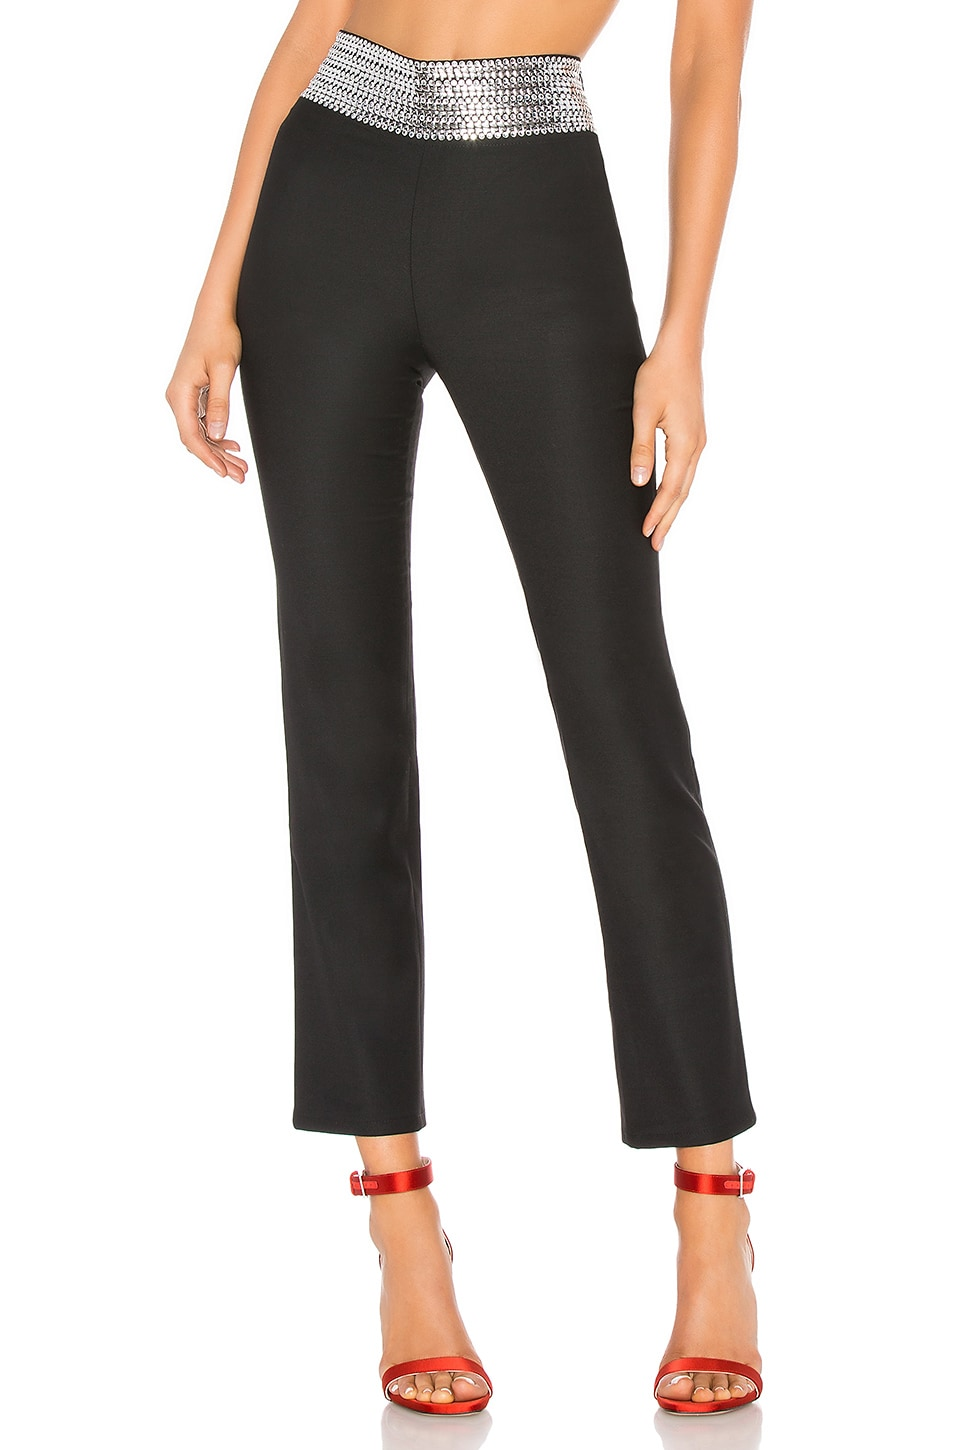 Adam Selman Sport Sandy Pant with Hearts in Black